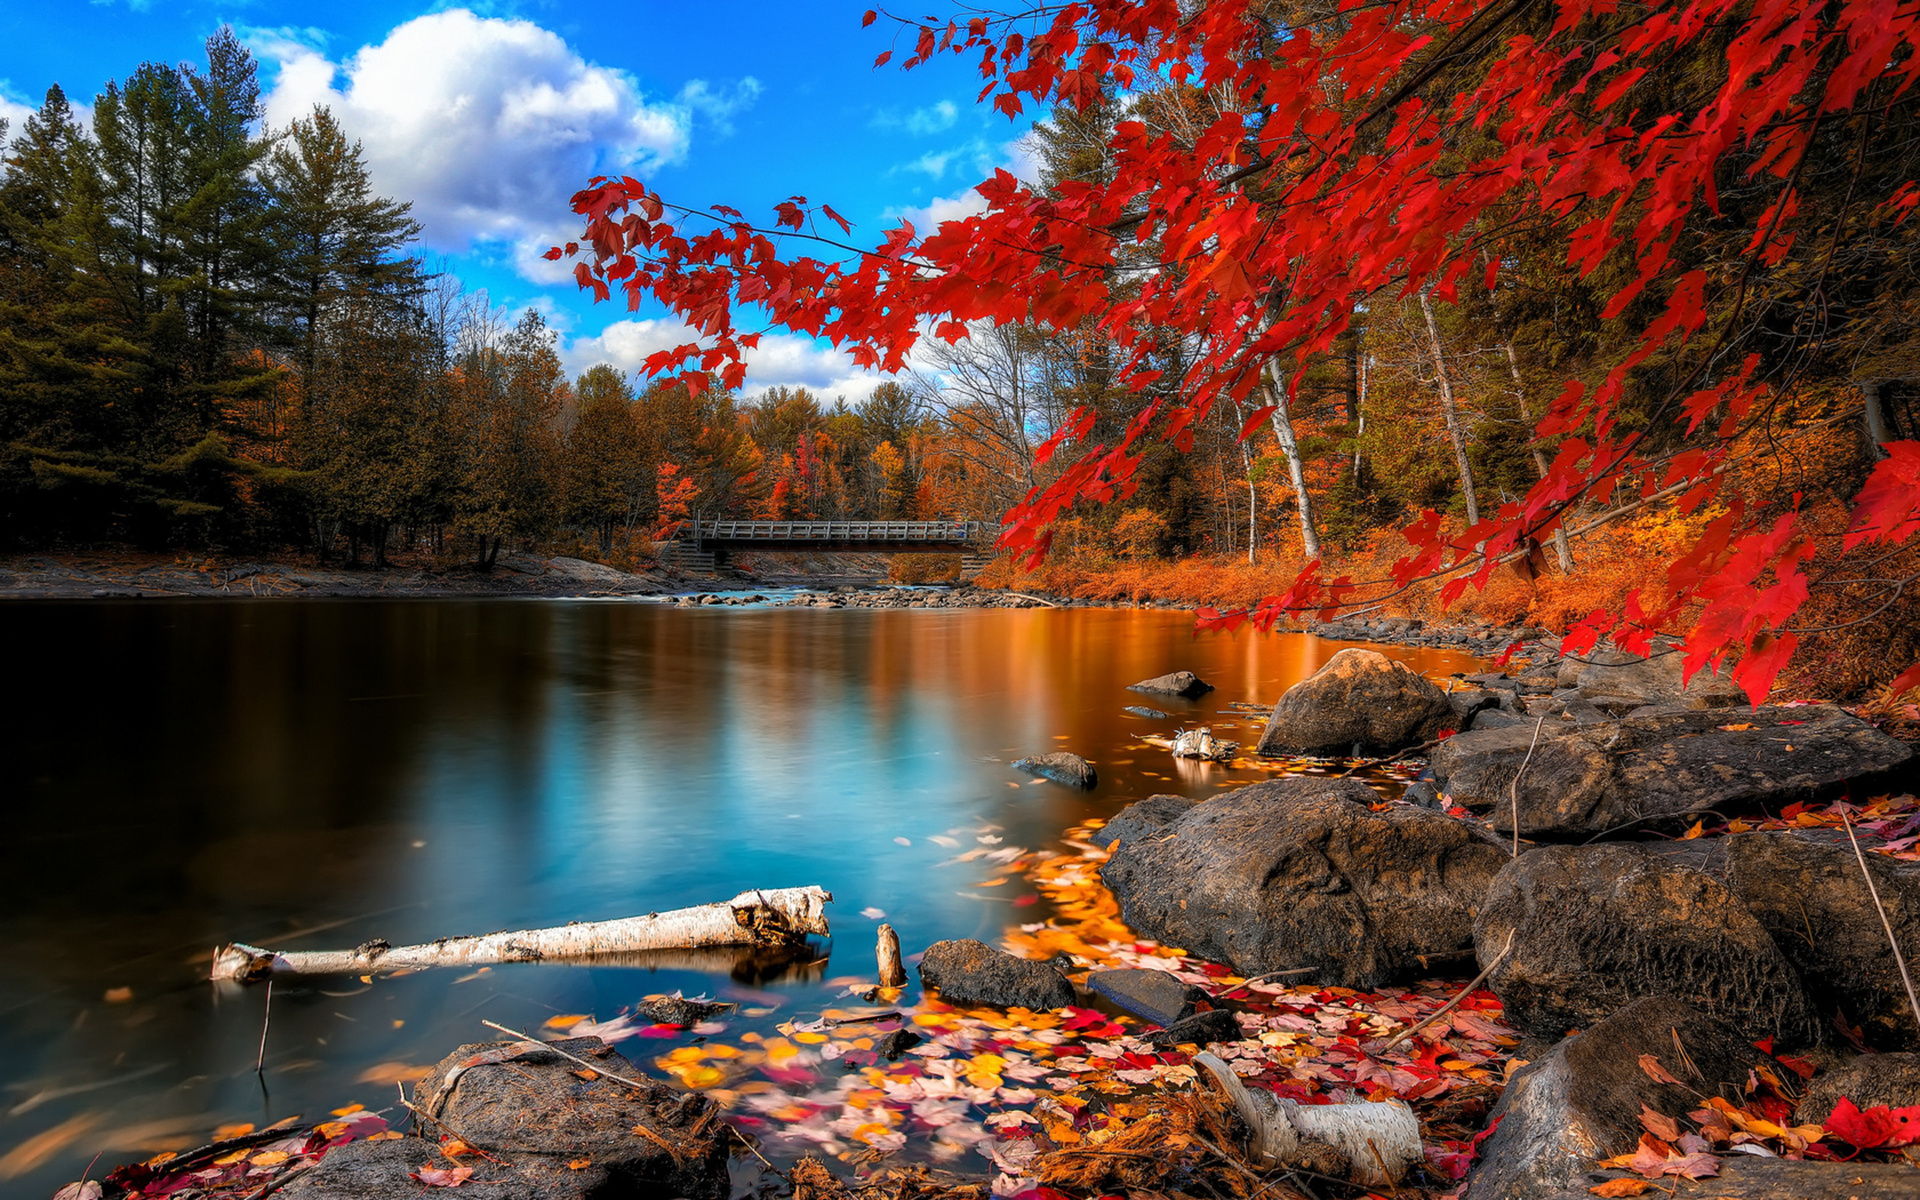 Desktop outstanding backgrounds fall hd download.